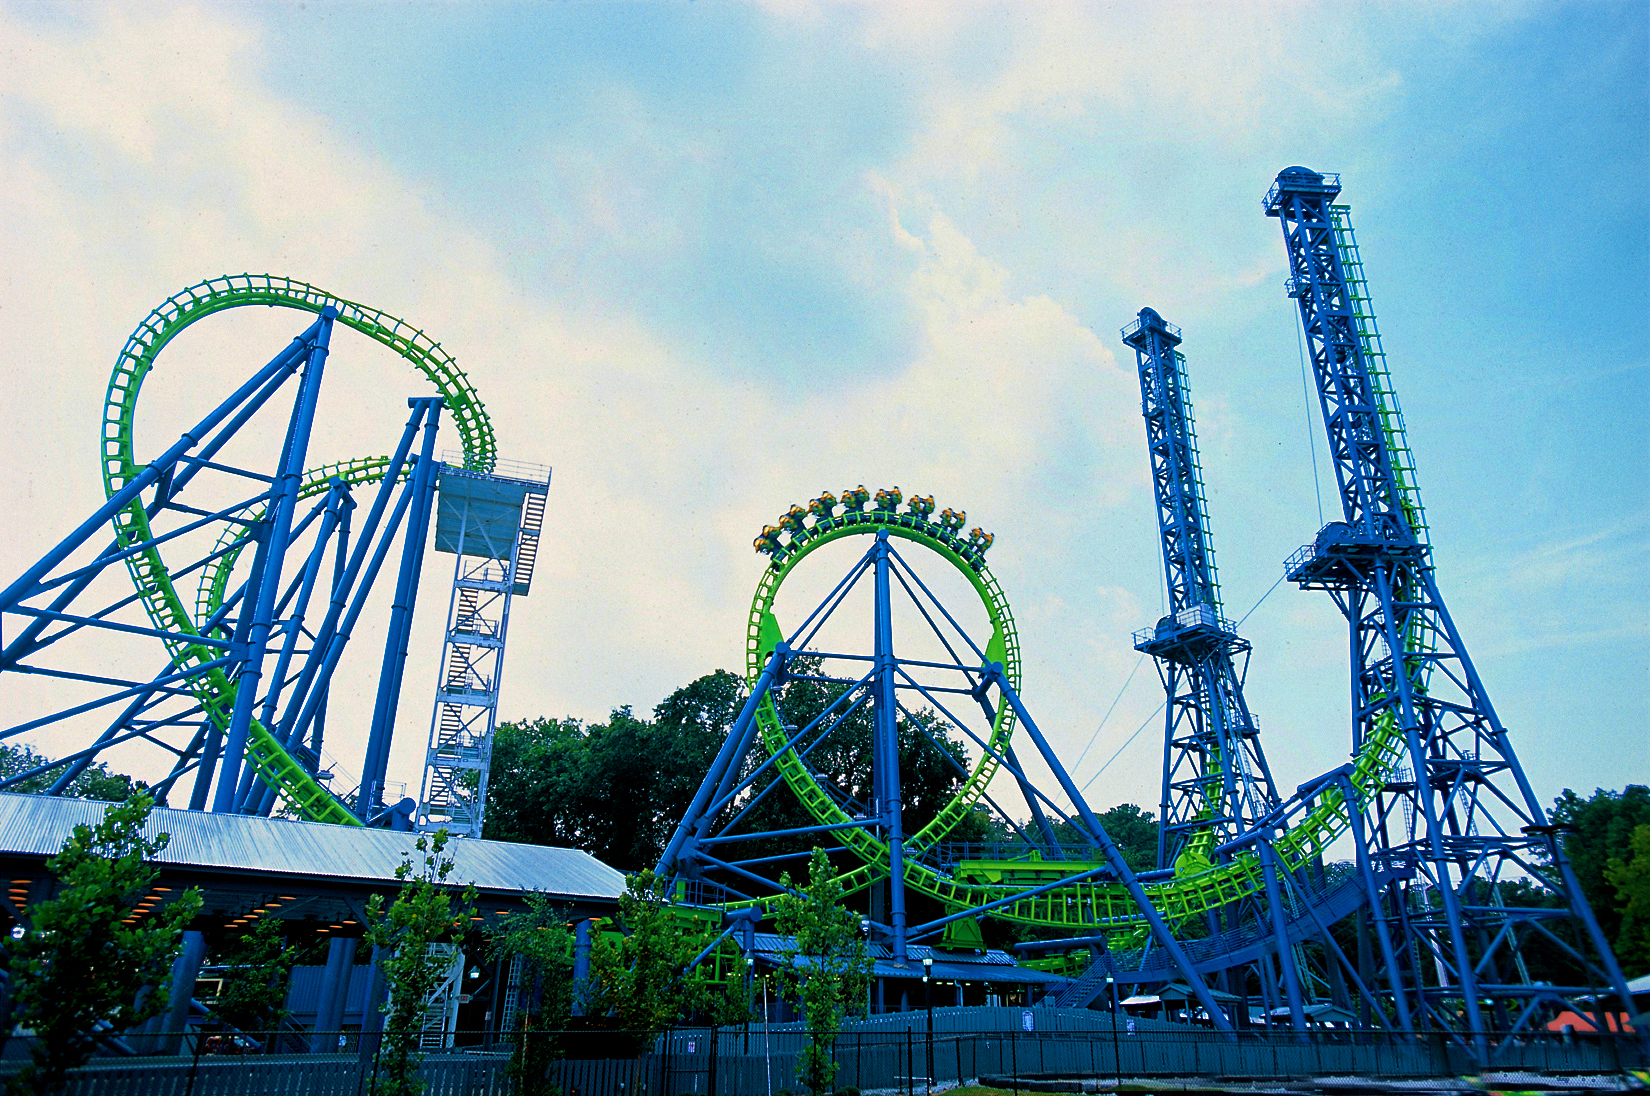 Rollercoasters Images Six Flags New England Goliath Hd Wallpaper And Background P Os